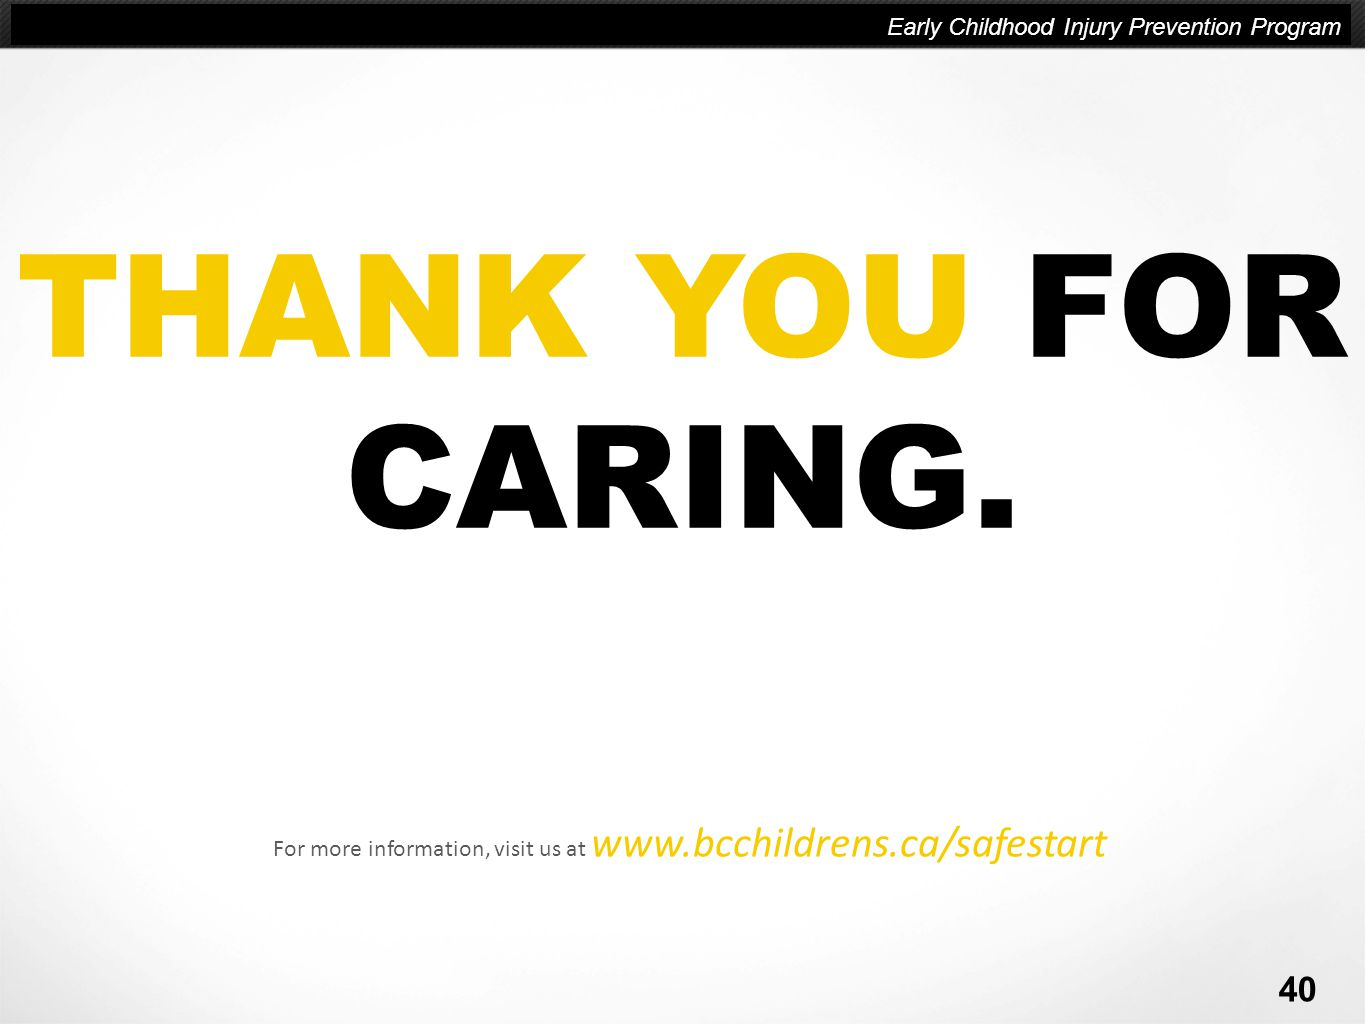 Company name | Company Slogan here THANK YOU FOR CARING. For more information, visit us at www.bcchildrens.ca/safestart Early Childhood Injury Prevent